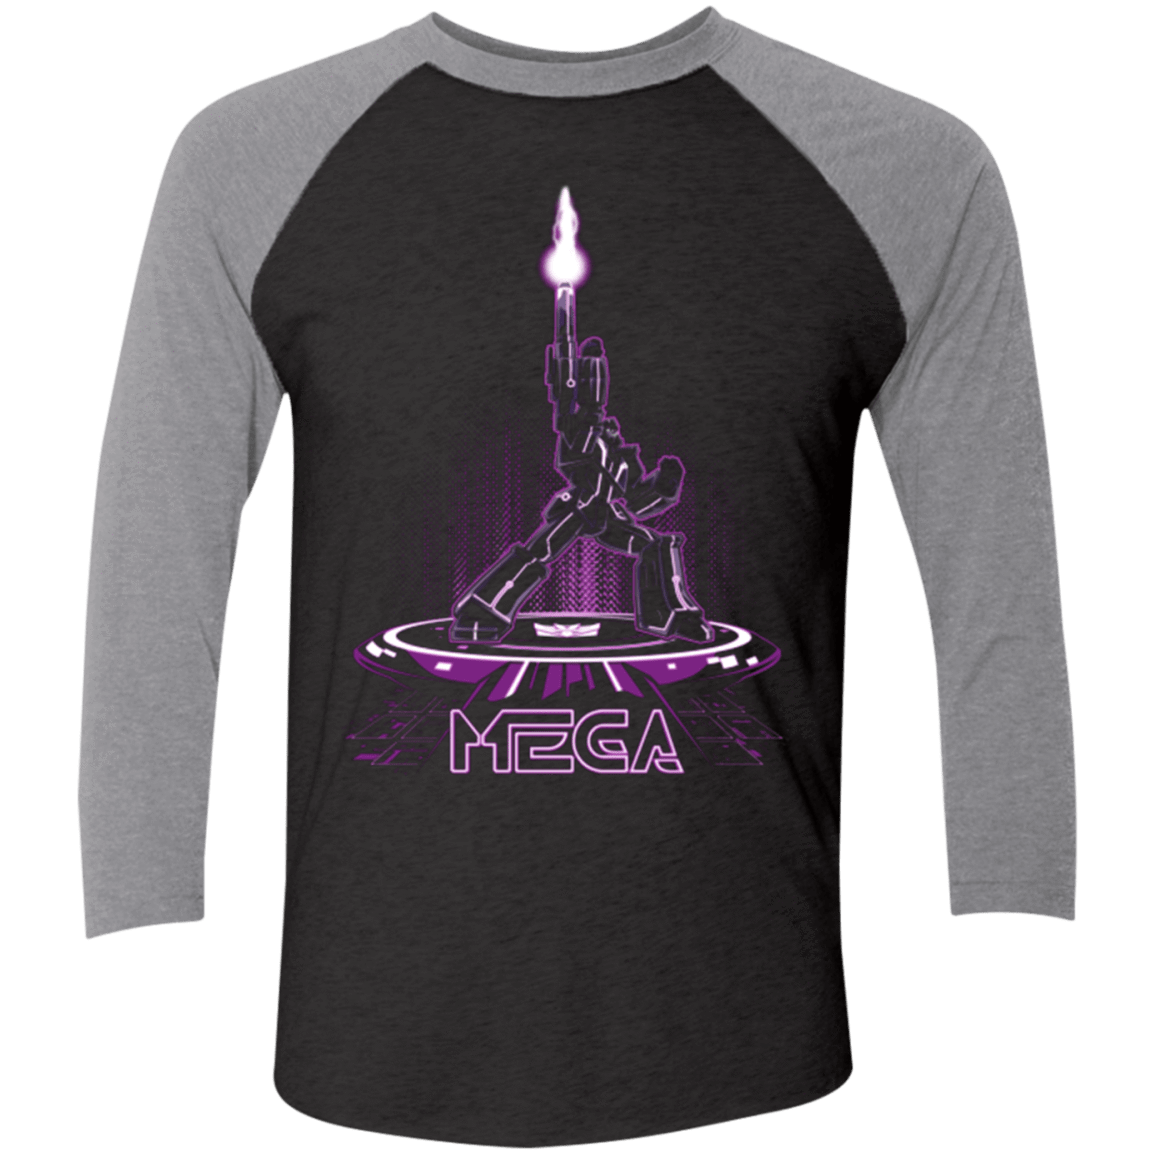 MEGA (Tron) Men's Triblend 3/4 Sleeve